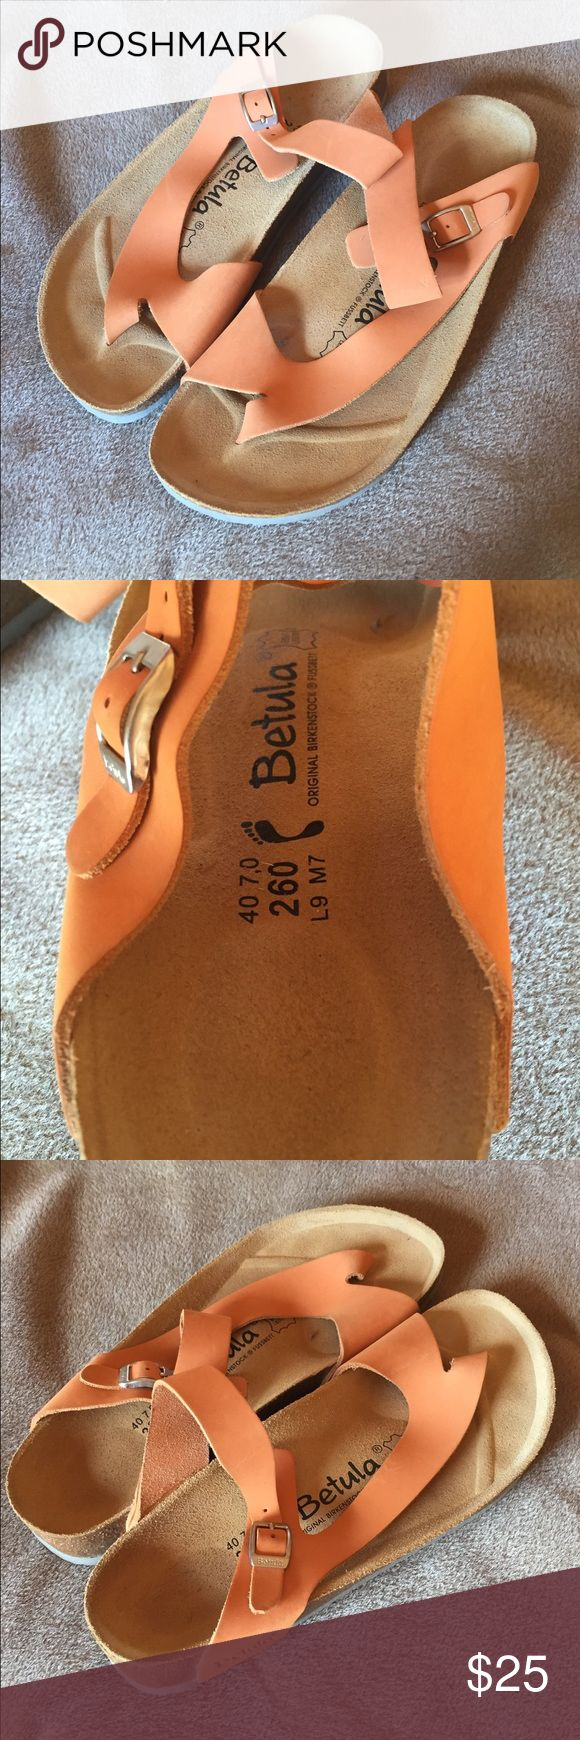 Orange Birkenstock Betula Sandals Size 40 Euro. New, without original packaging. Only tried on, never worn out. Birkenstock Shoes Sandals